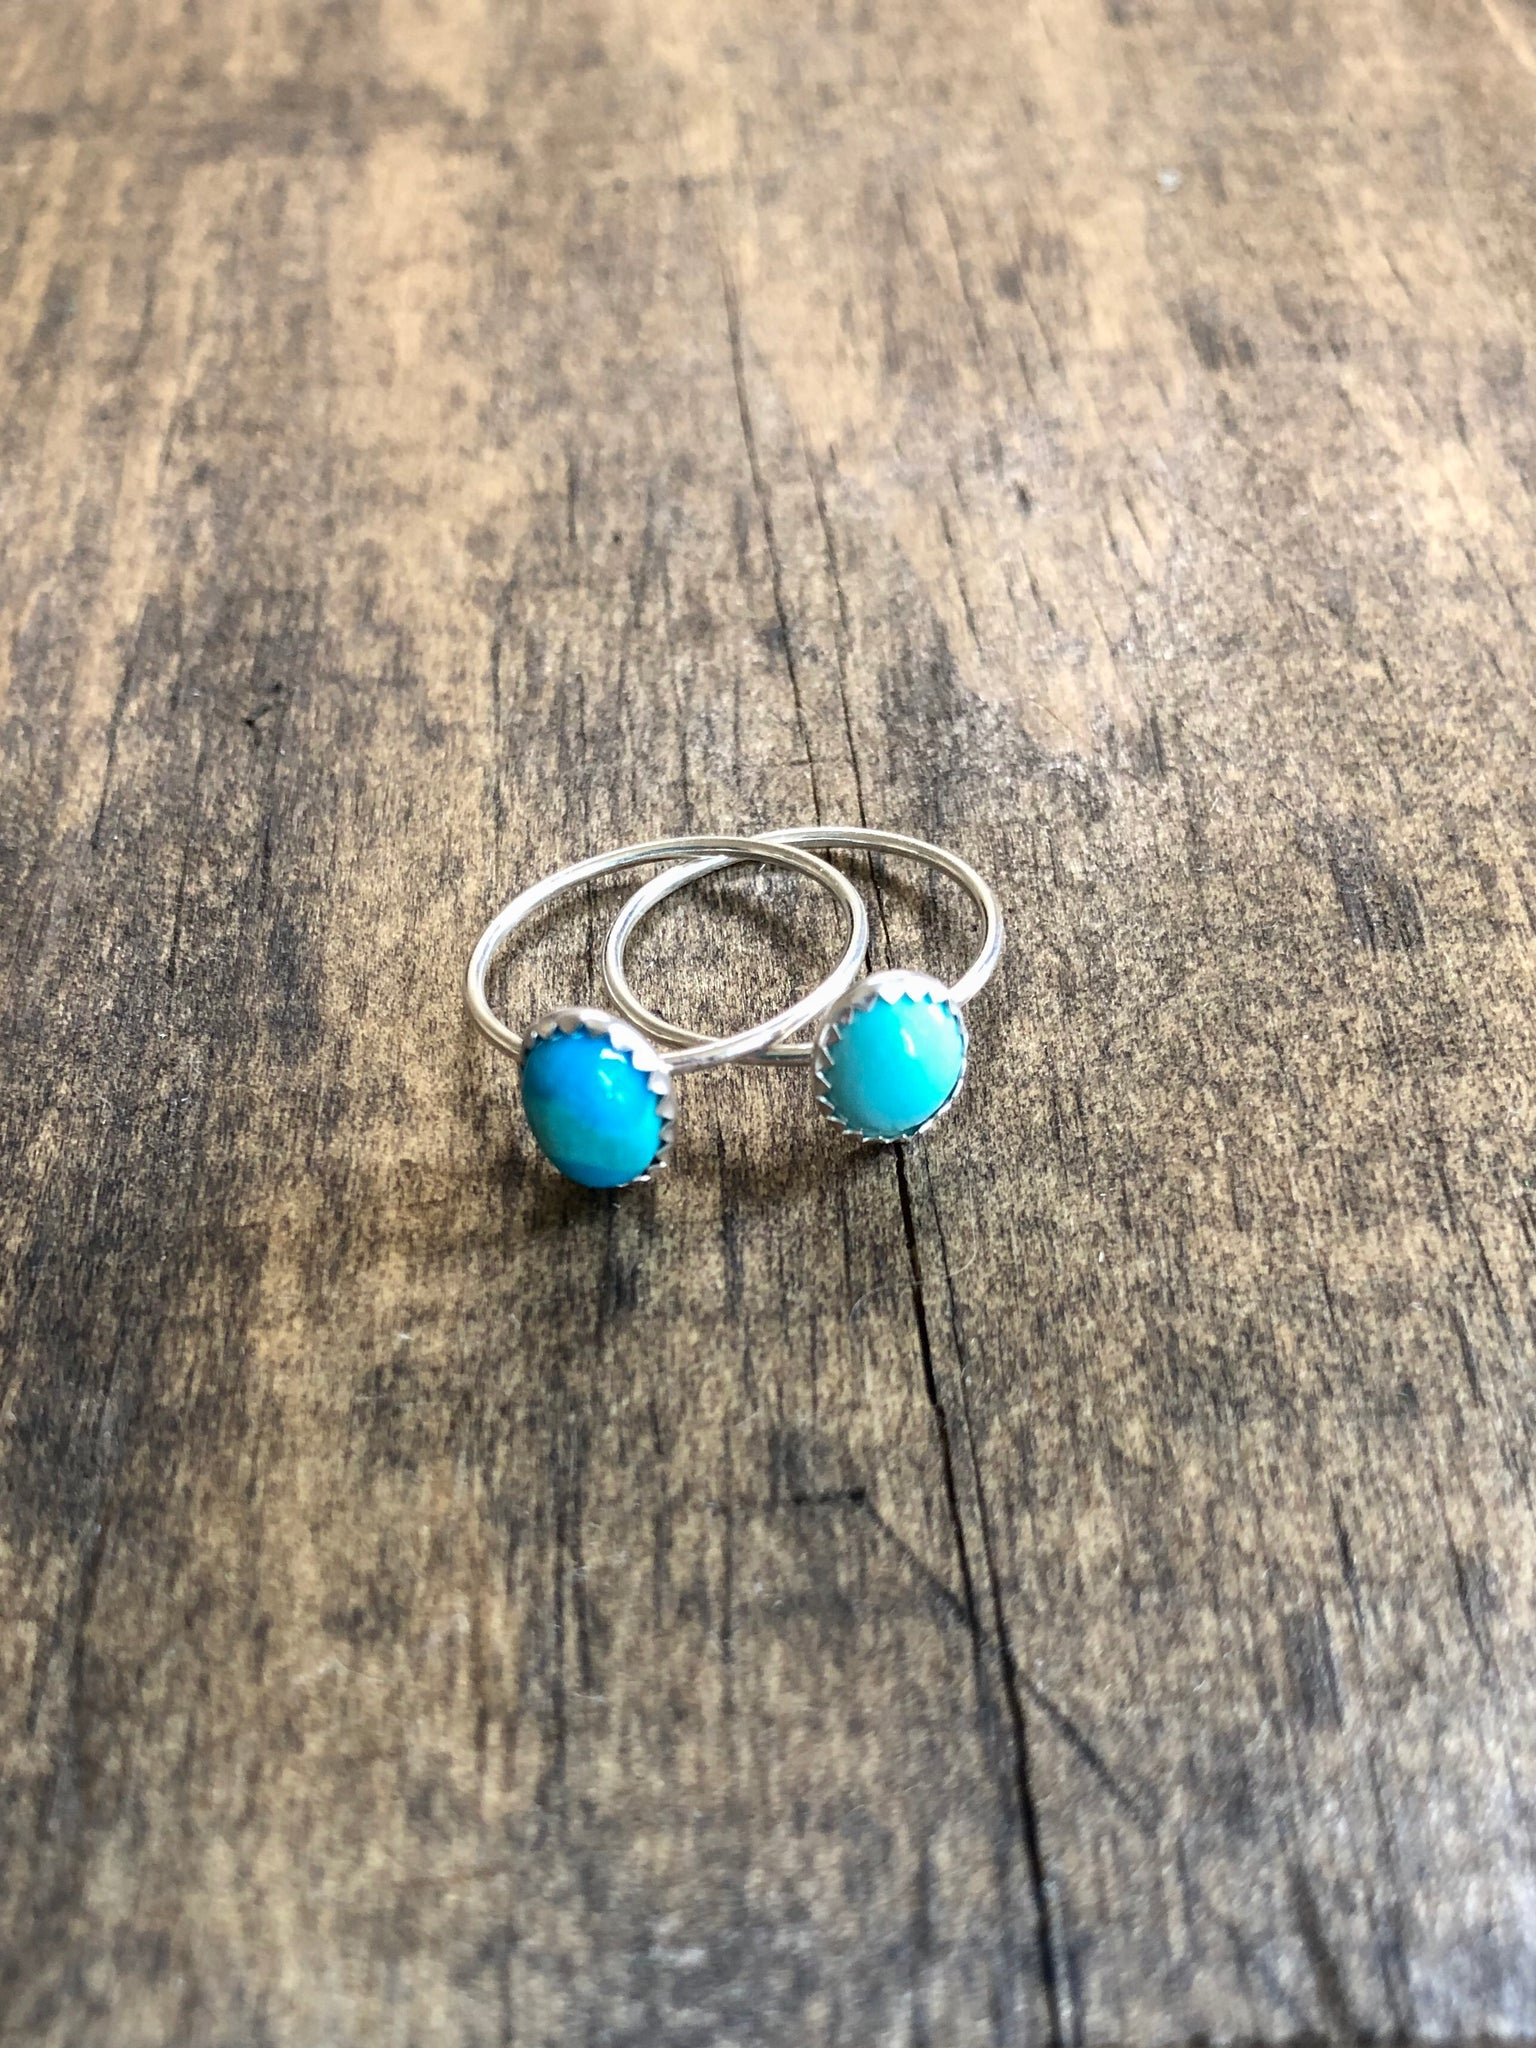 The Turquoise Stacking Ring